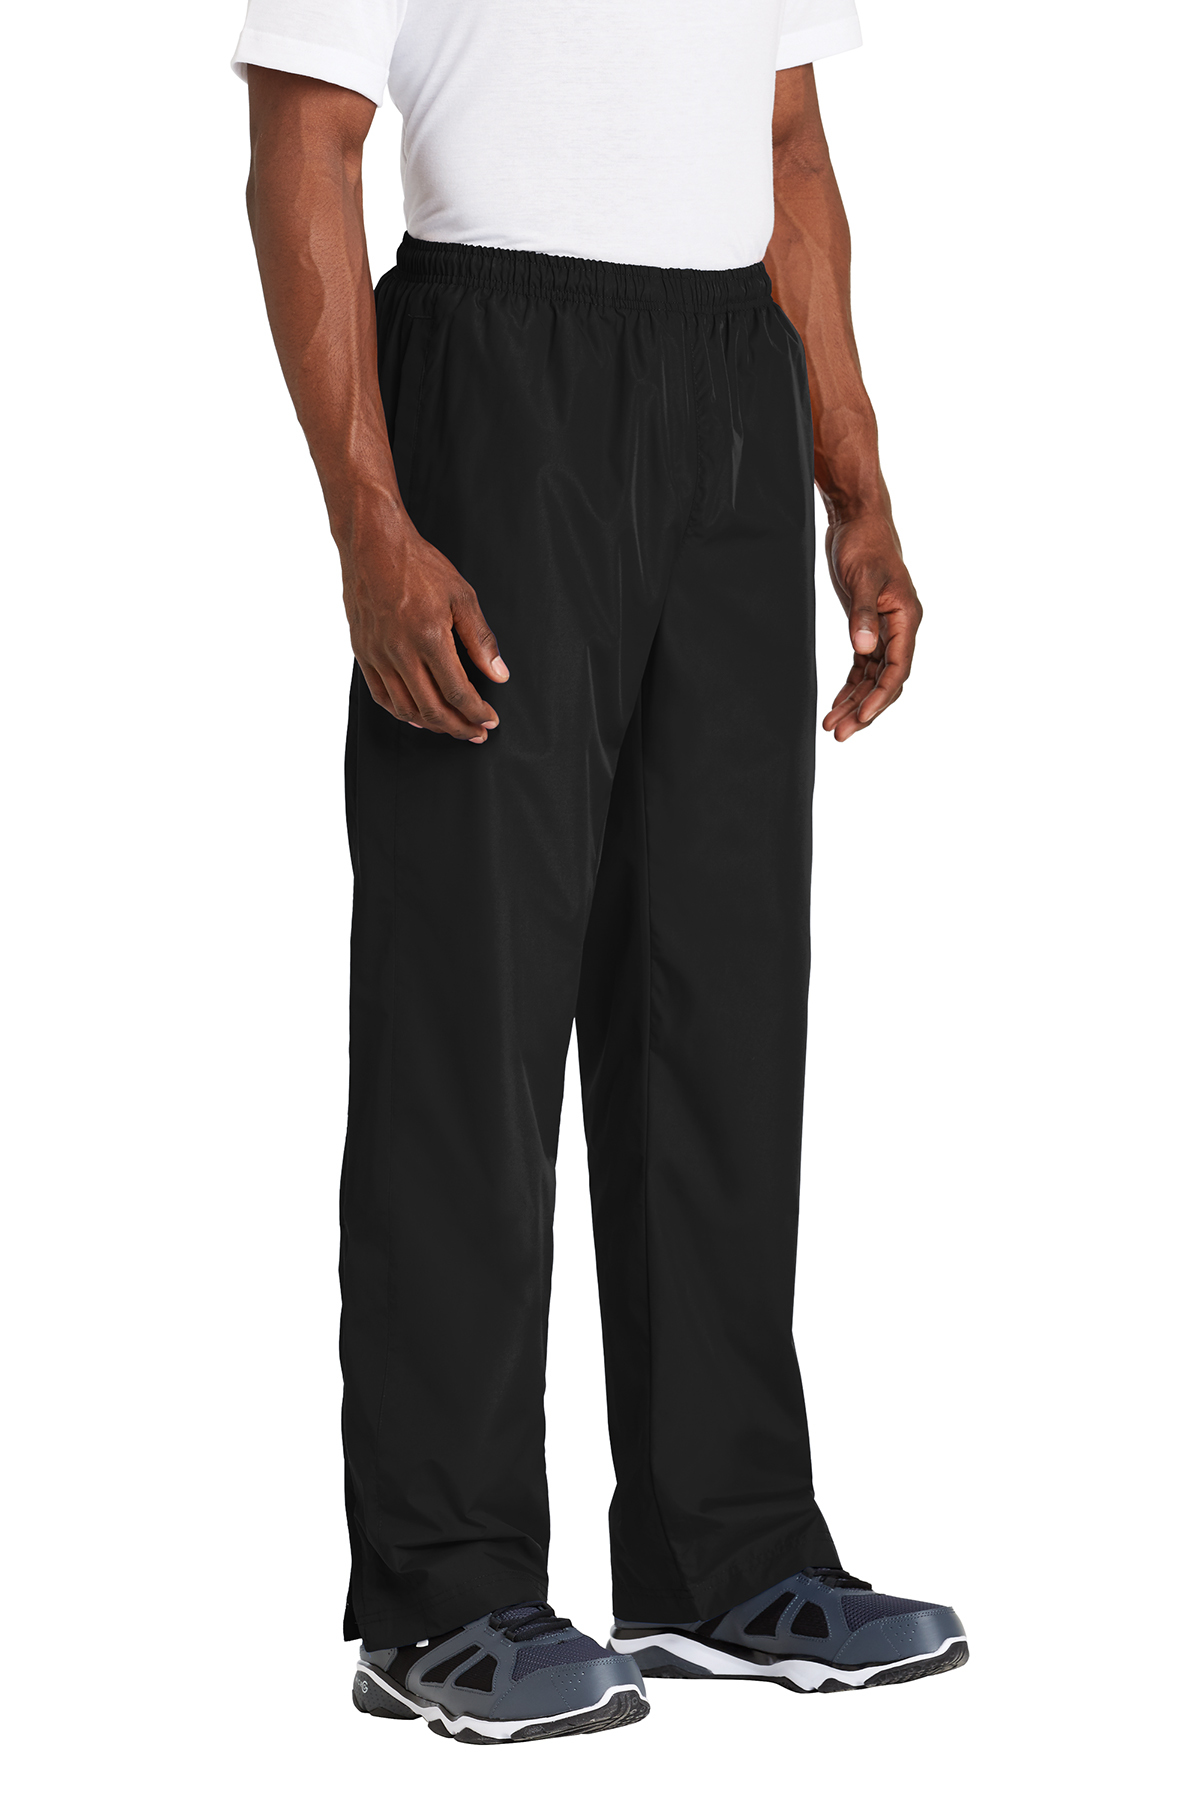 Sport Tek Wind Pant Athletic Warm Ups Activewear Sport Tek The relaxed styling and elastic drawcord waist ensure a comfortable fit. sport tek wind pant athletic warm